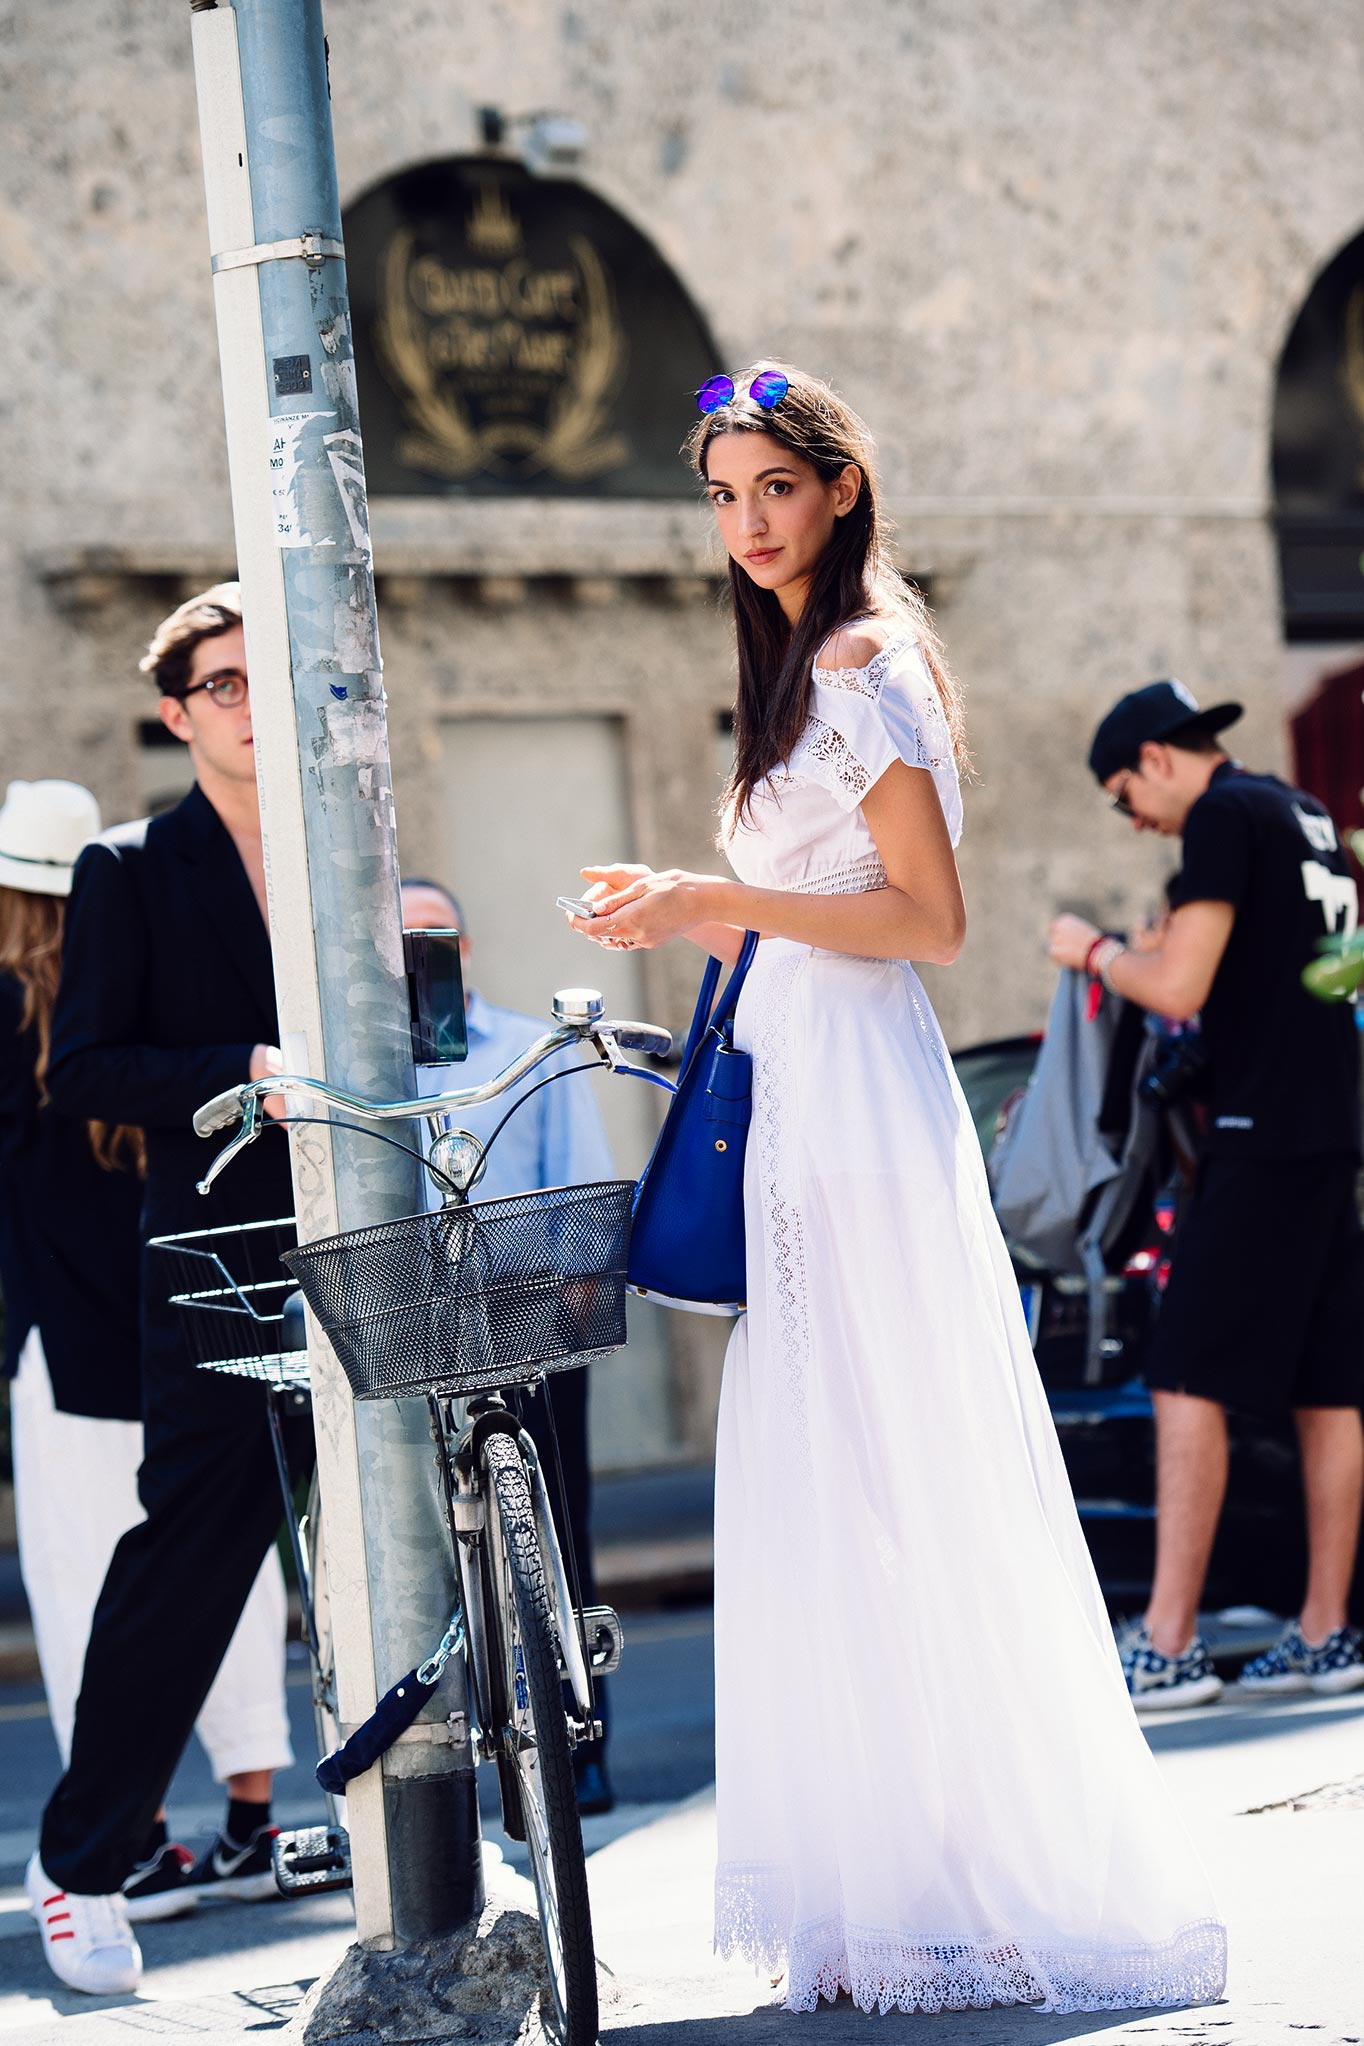 Sara Nicole Rossetto at Milan Fashion Week Spring/Summer